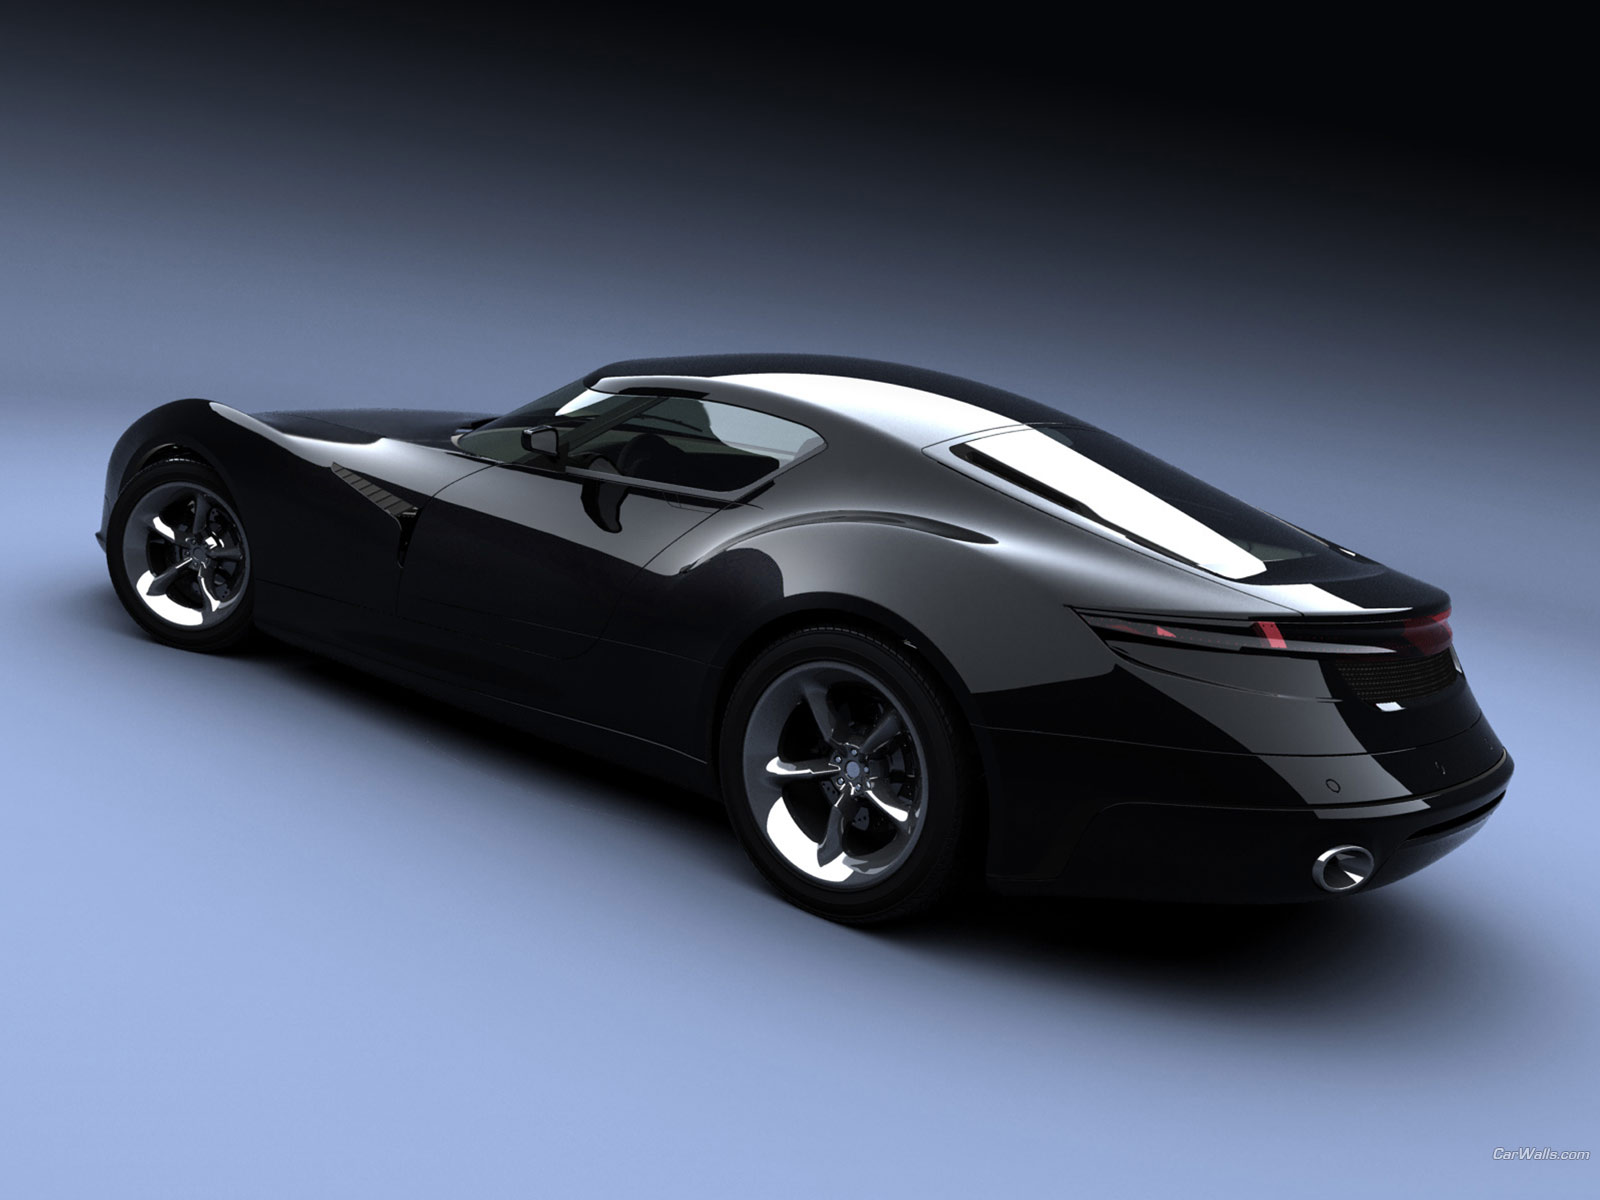 Wallpaper for Windows Vista supercar wallpaper 1600x1200